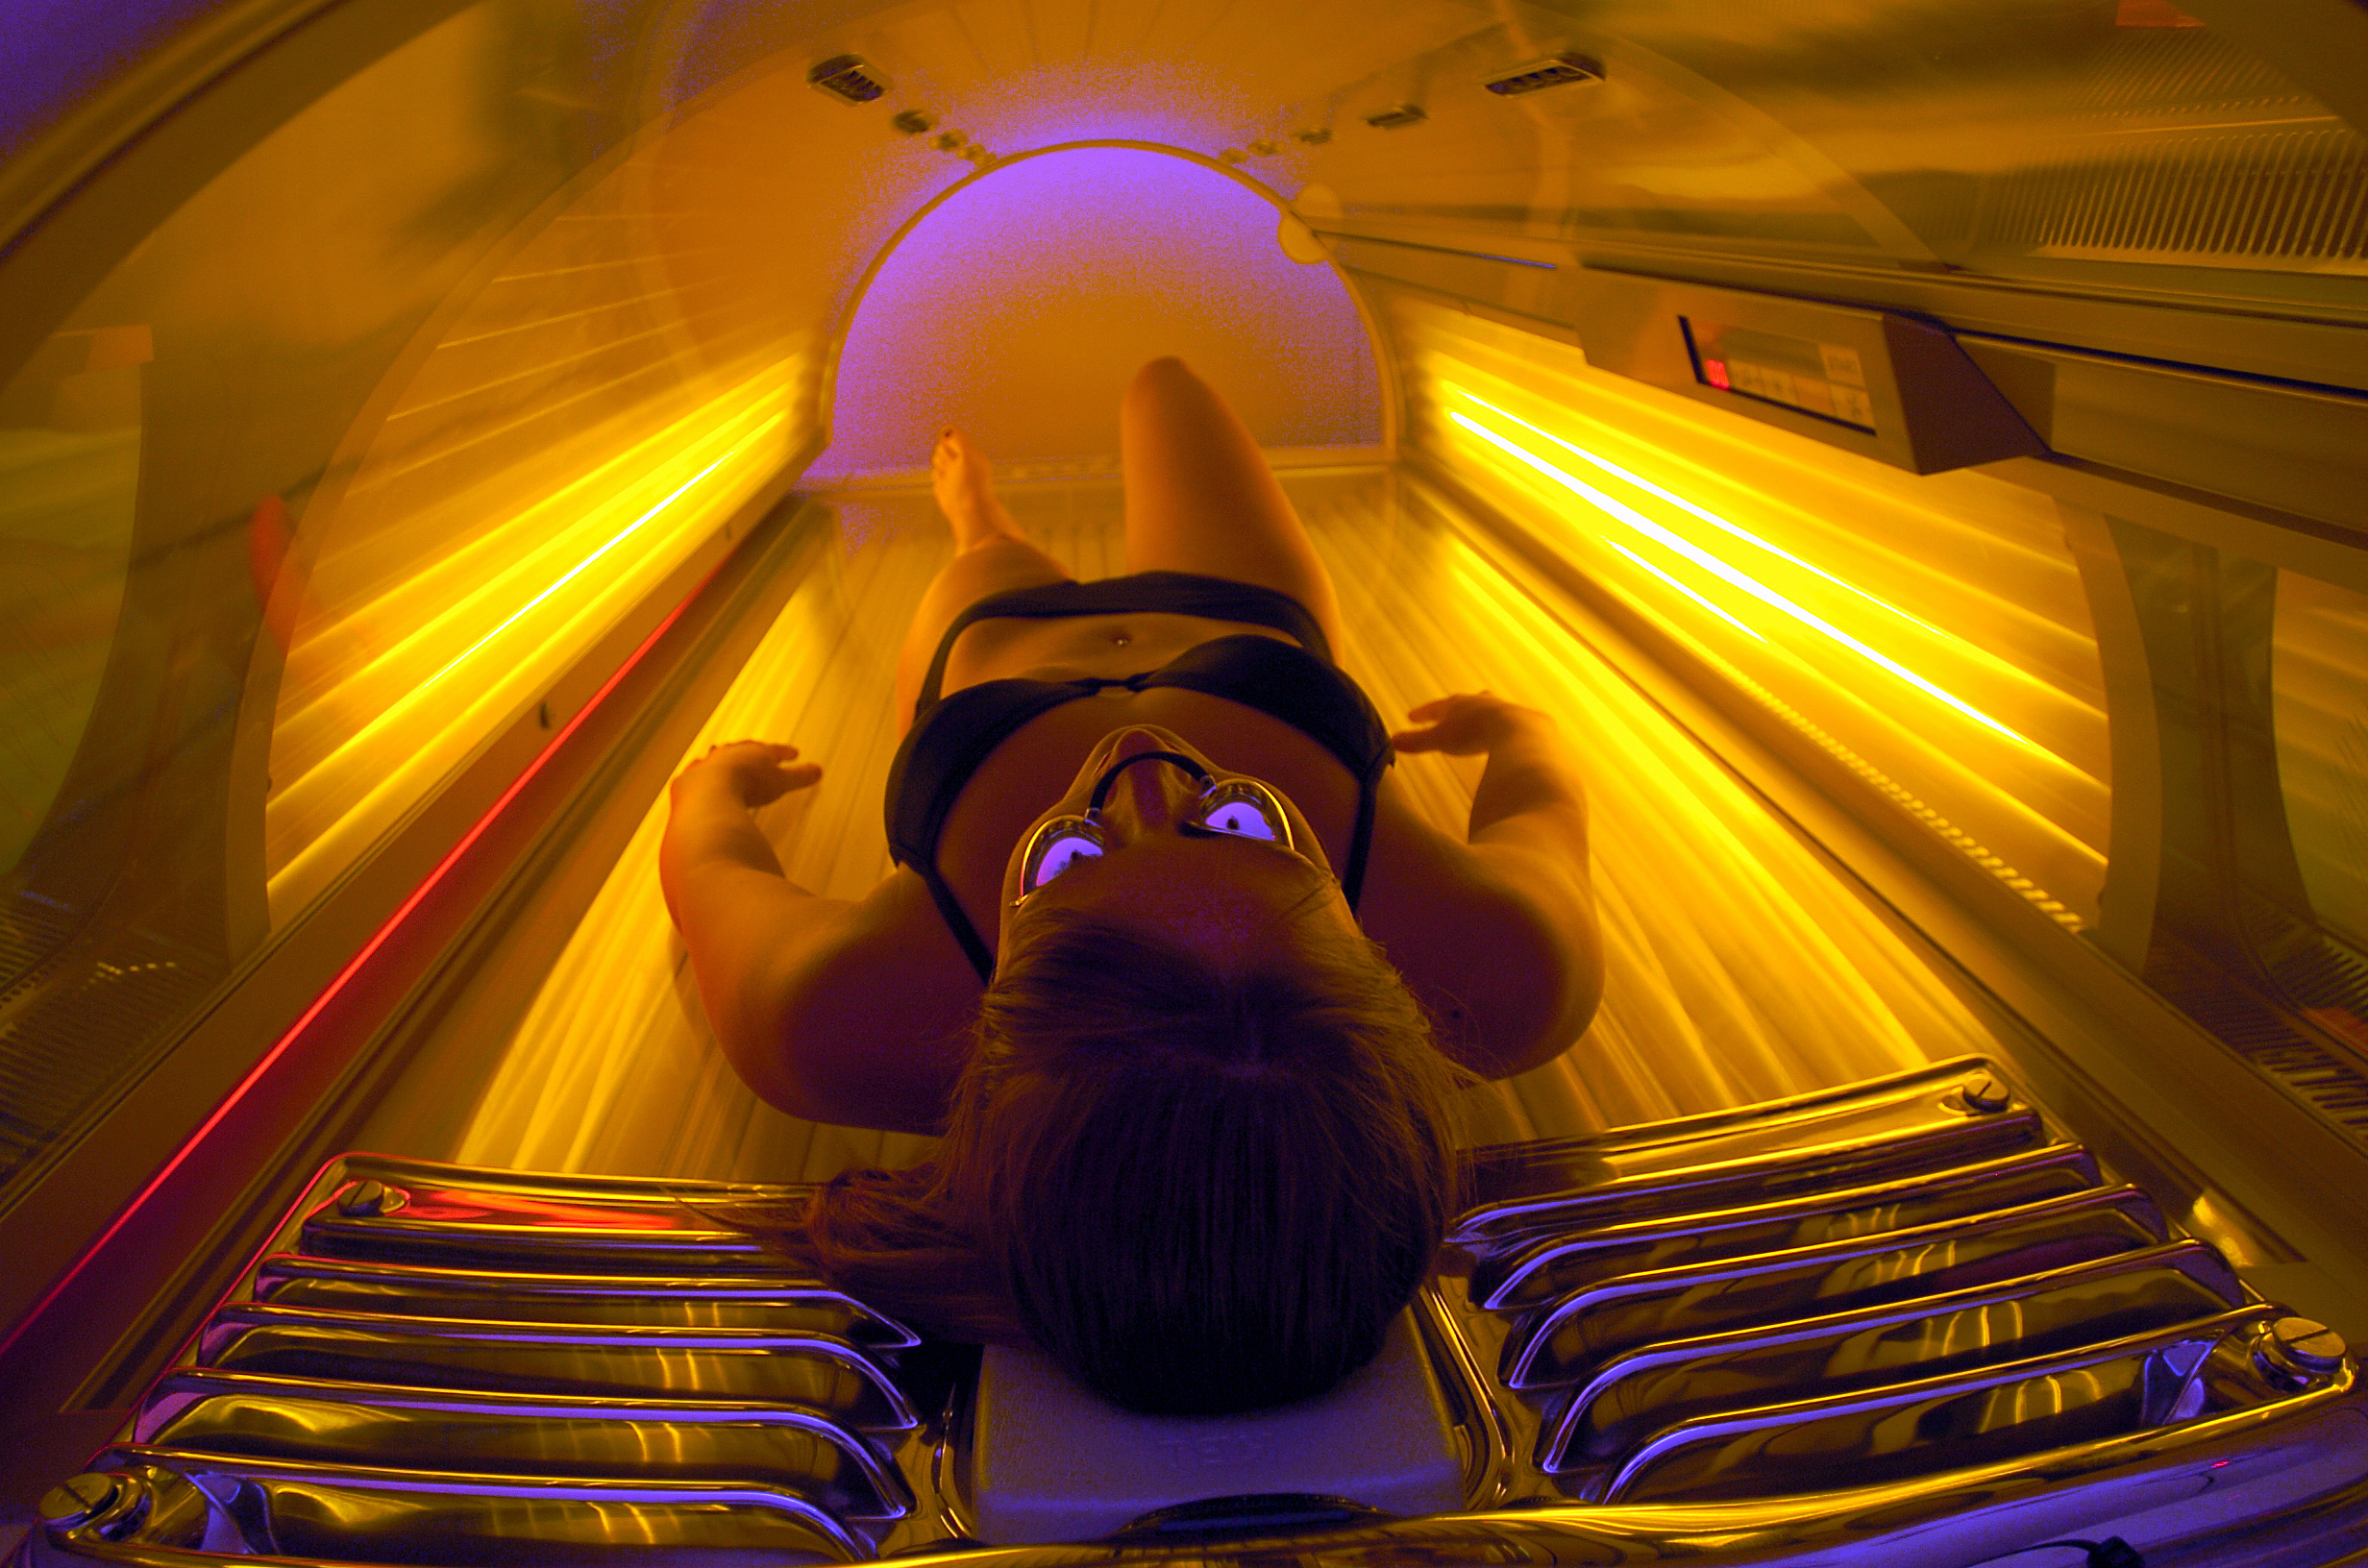 The U.S. Surgeon General issues a report in 2014  warning Americans to protect their skin from outdoor and indoor UV light, as skin cancer cases are on the rise.